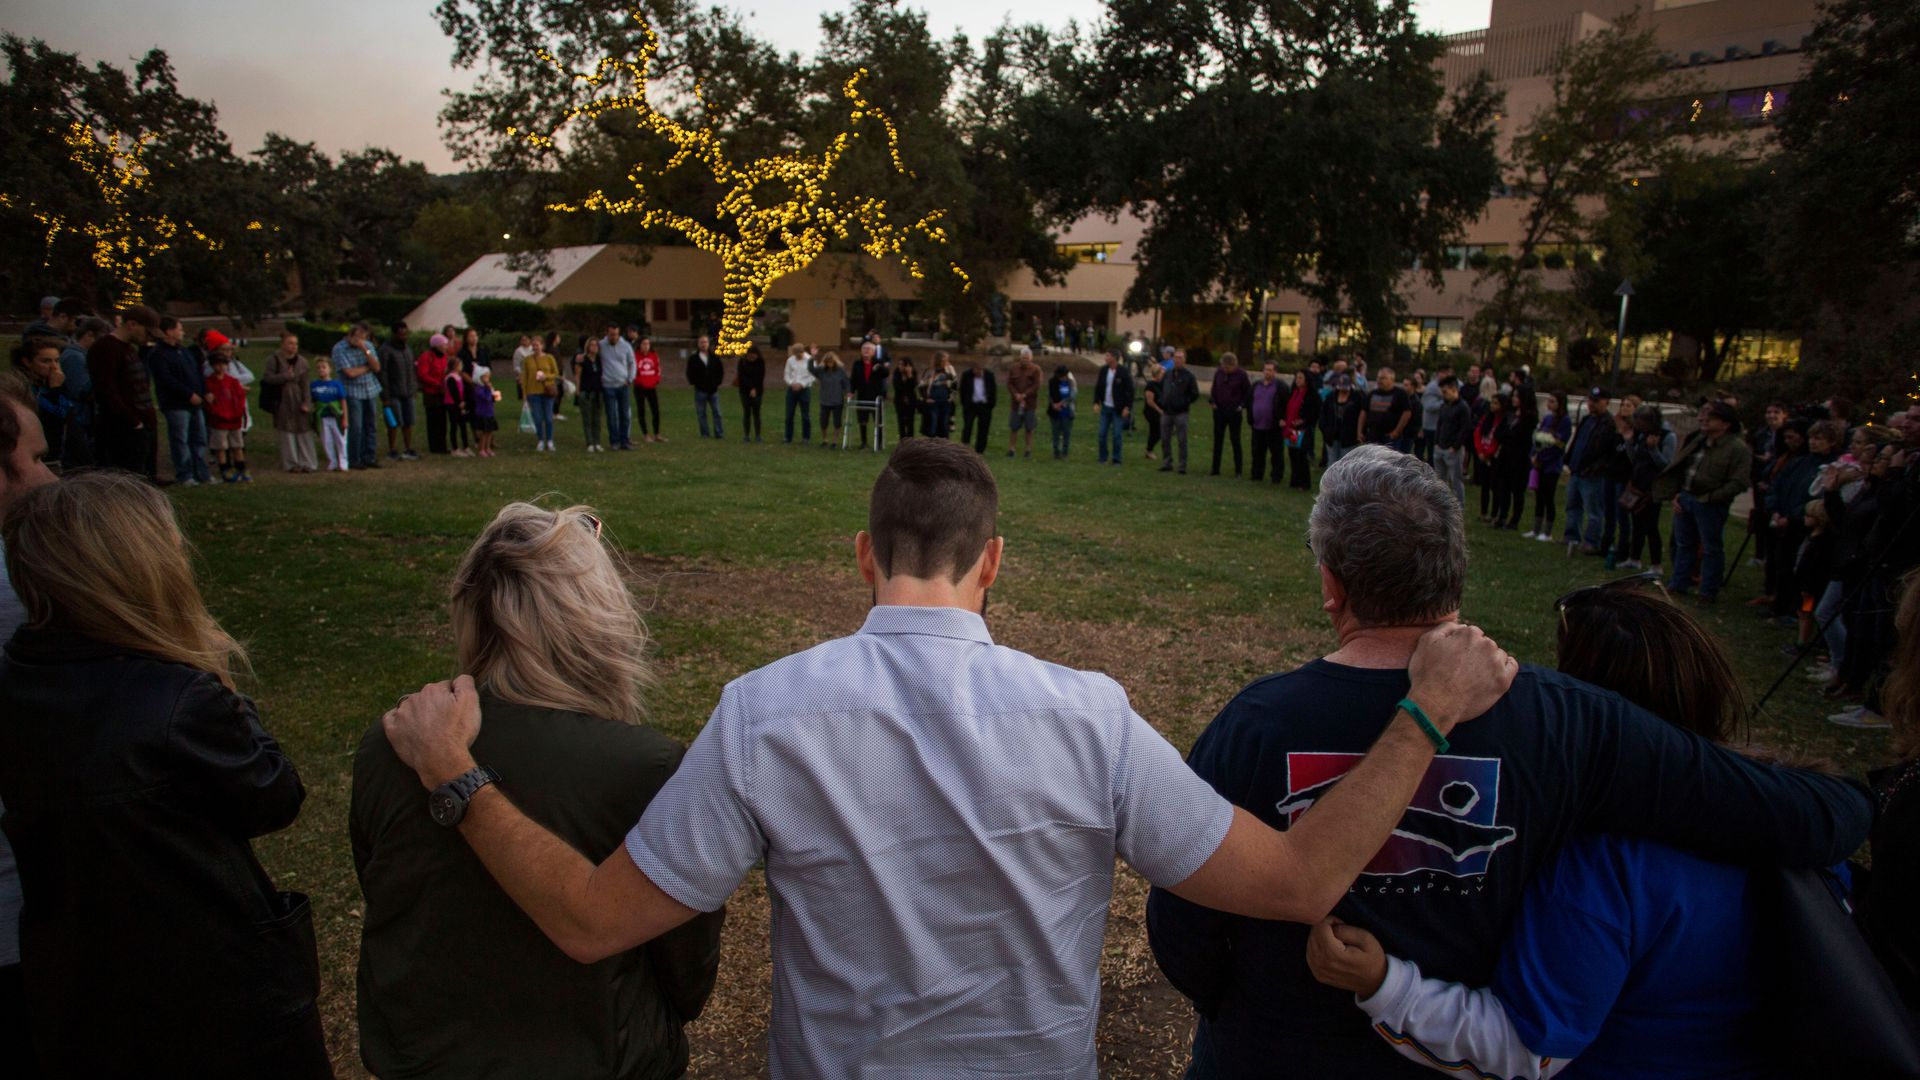 People in a circle at a vigil.